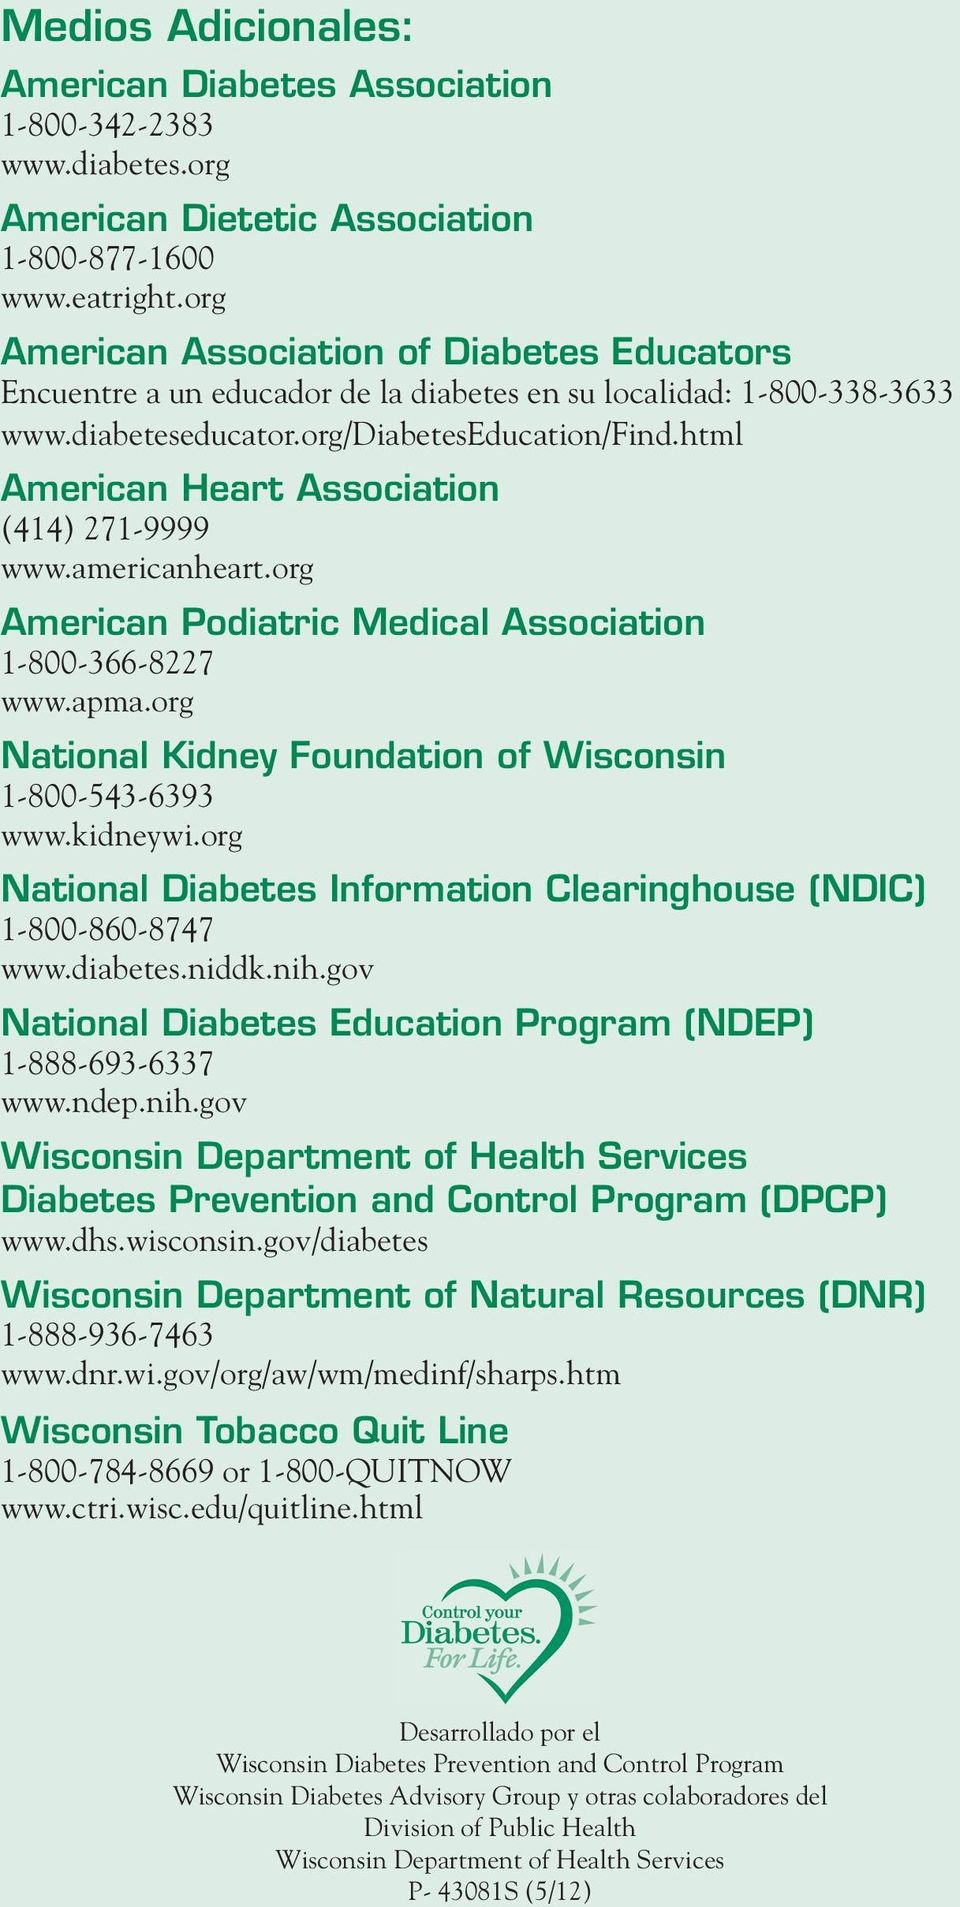 html American Heart Association (414) 271-9999 www.americanheart.org American Podiatric Medical Association 1-800-366-8227 www.apma.org National Kidney Foundation of Wisconsin 1-800-543-6393 www.